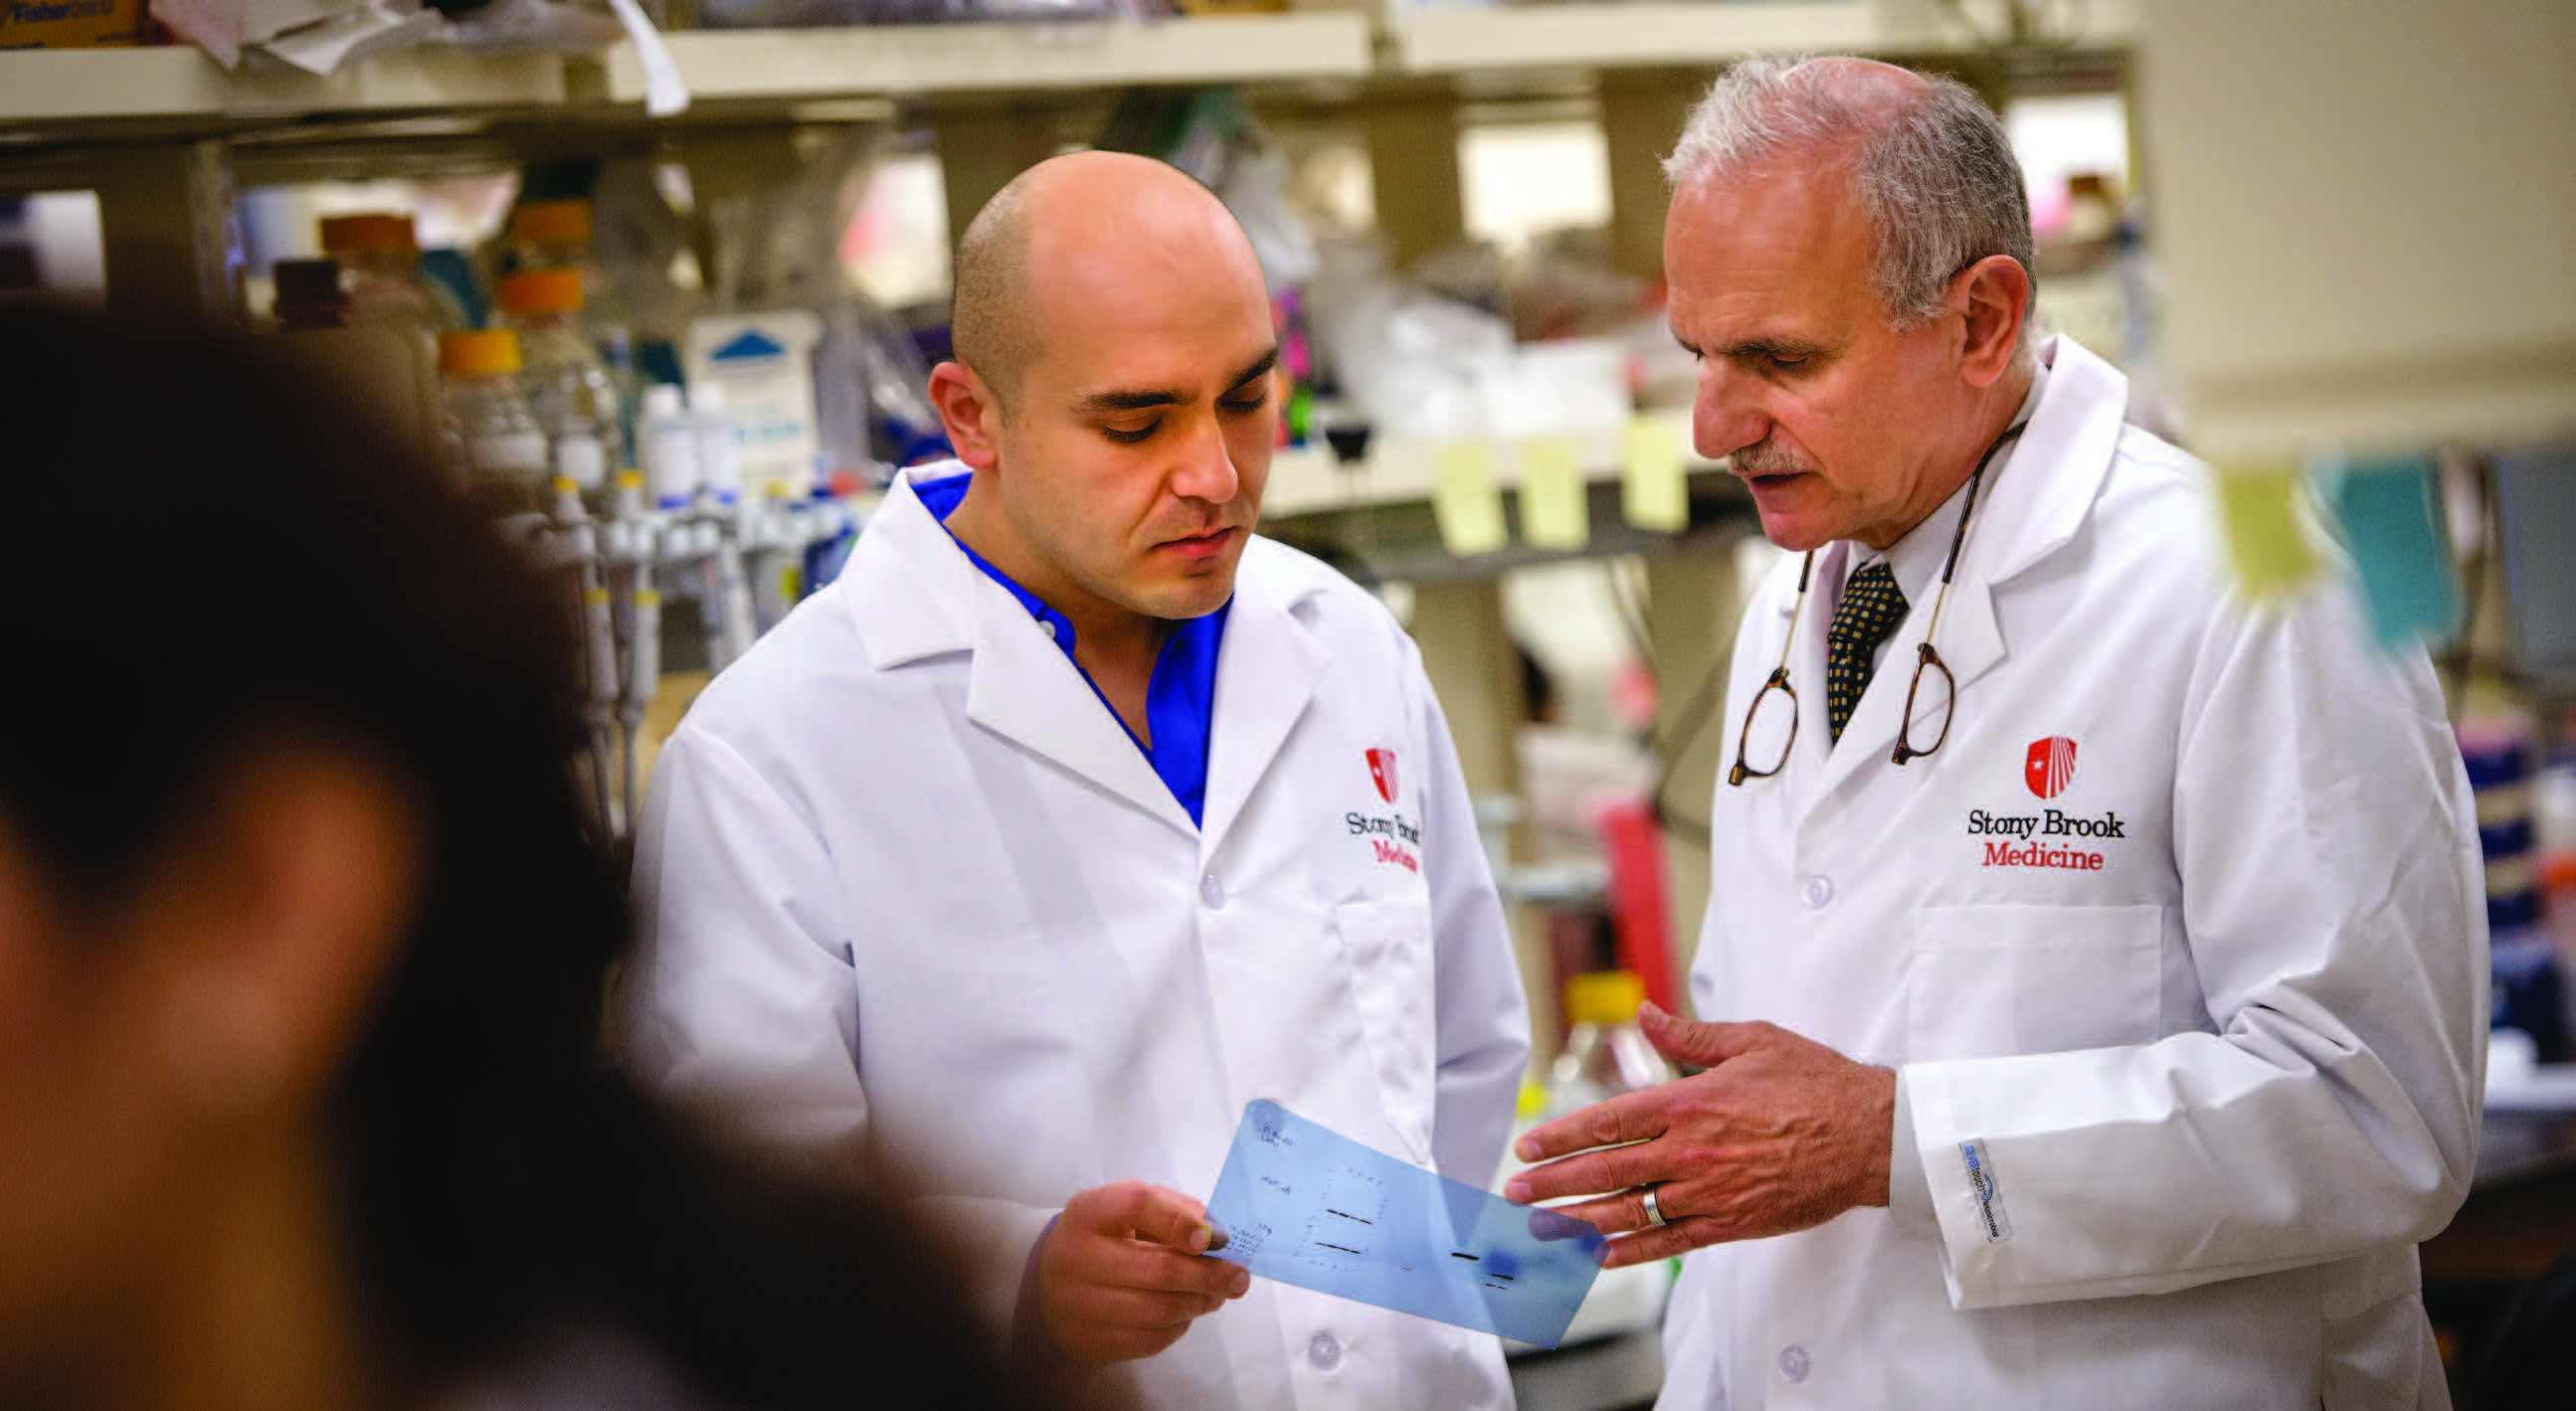 Cancer Center Director Yusuf A. Hannun, MD (right) discusses a result with Research Assistant Professor Can Senkal.